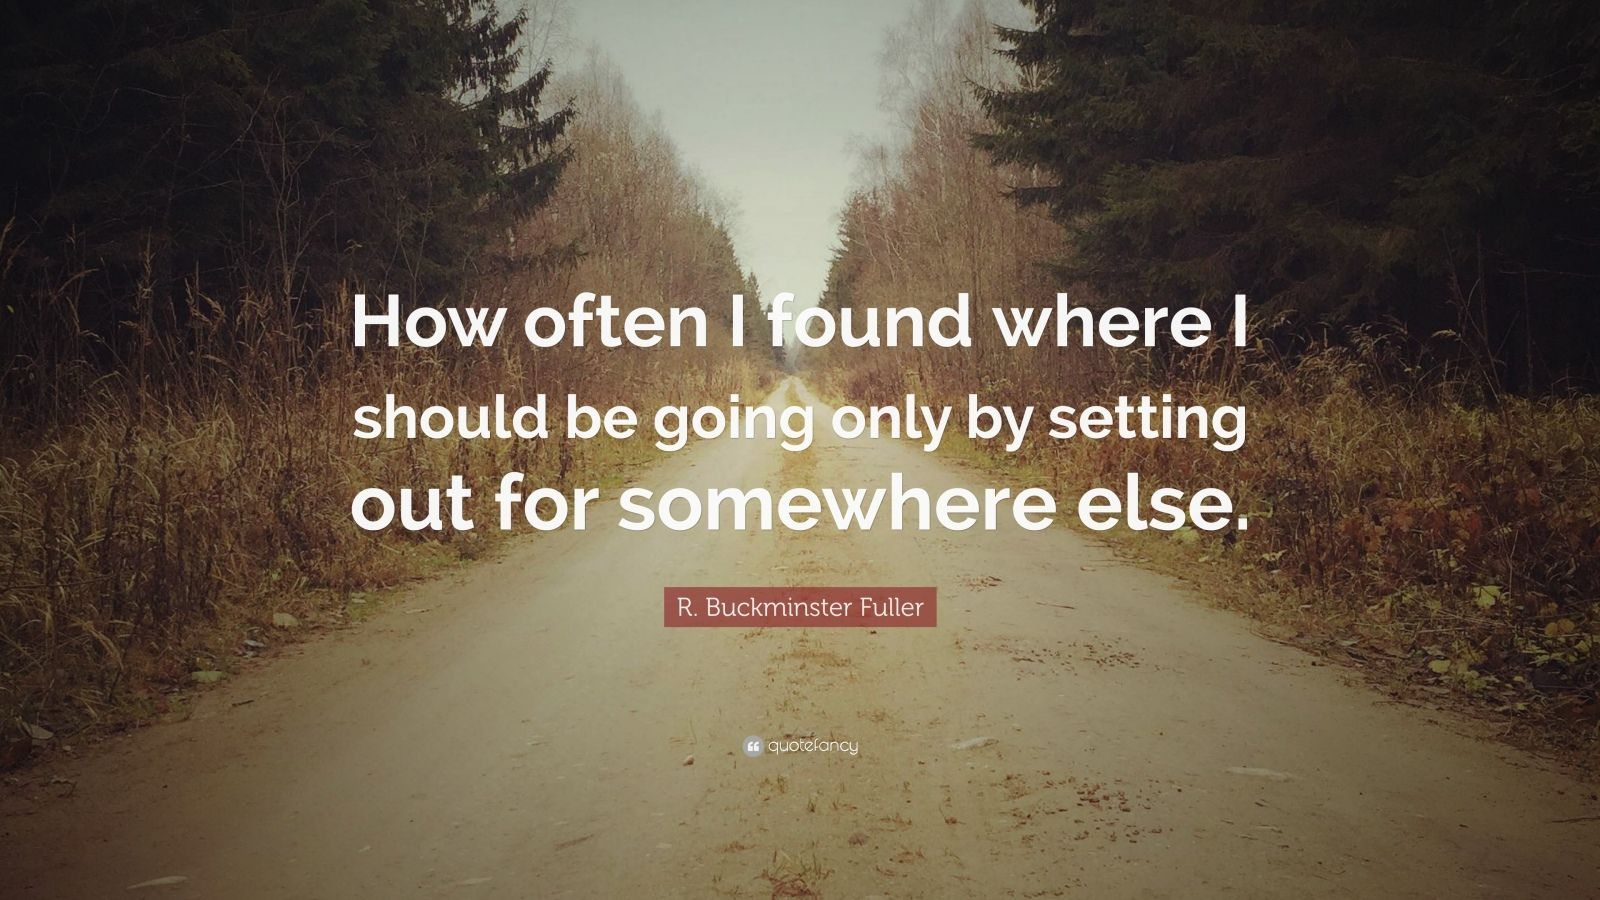 """R. Buckminster Fuller Quote: """"How often I found where I should be going only by setting out for somewhere else."""""""